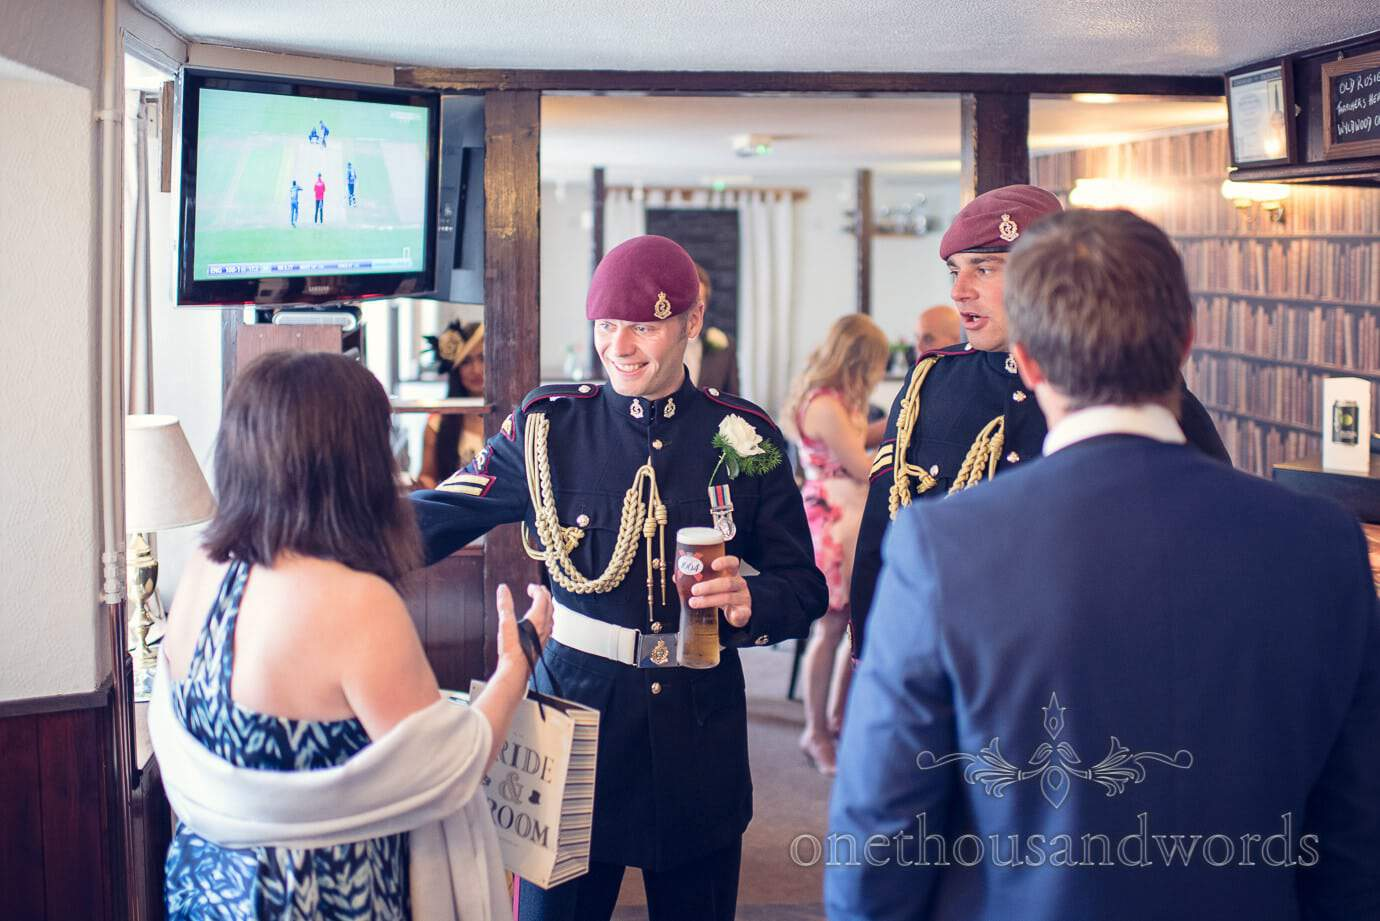 Groom in military uniform drinks a beer and greets guests at pub